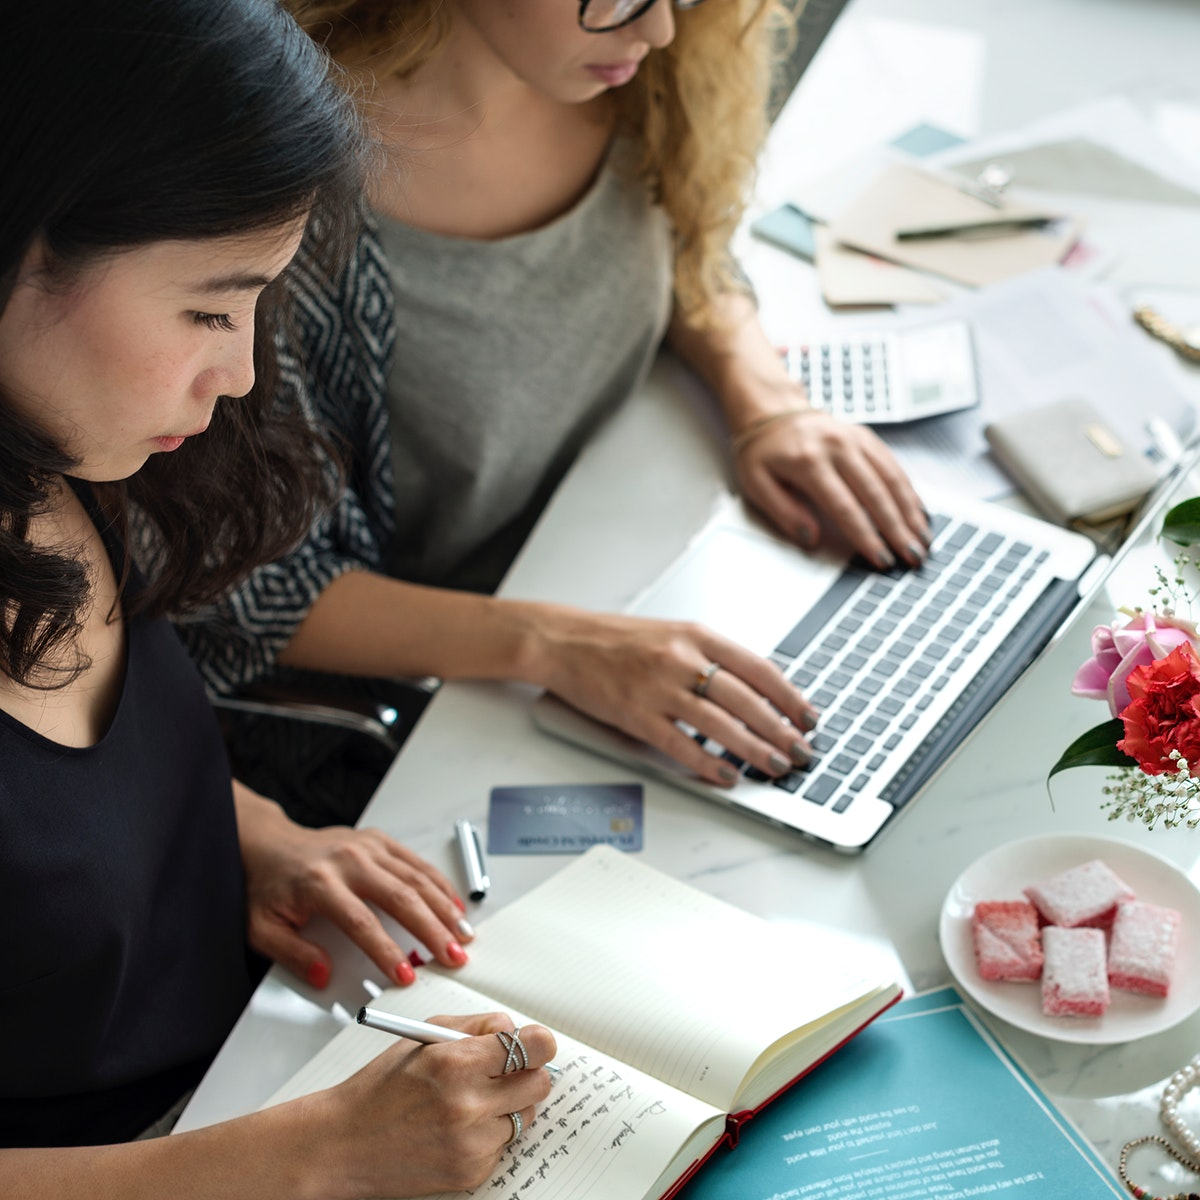 Women working on small business